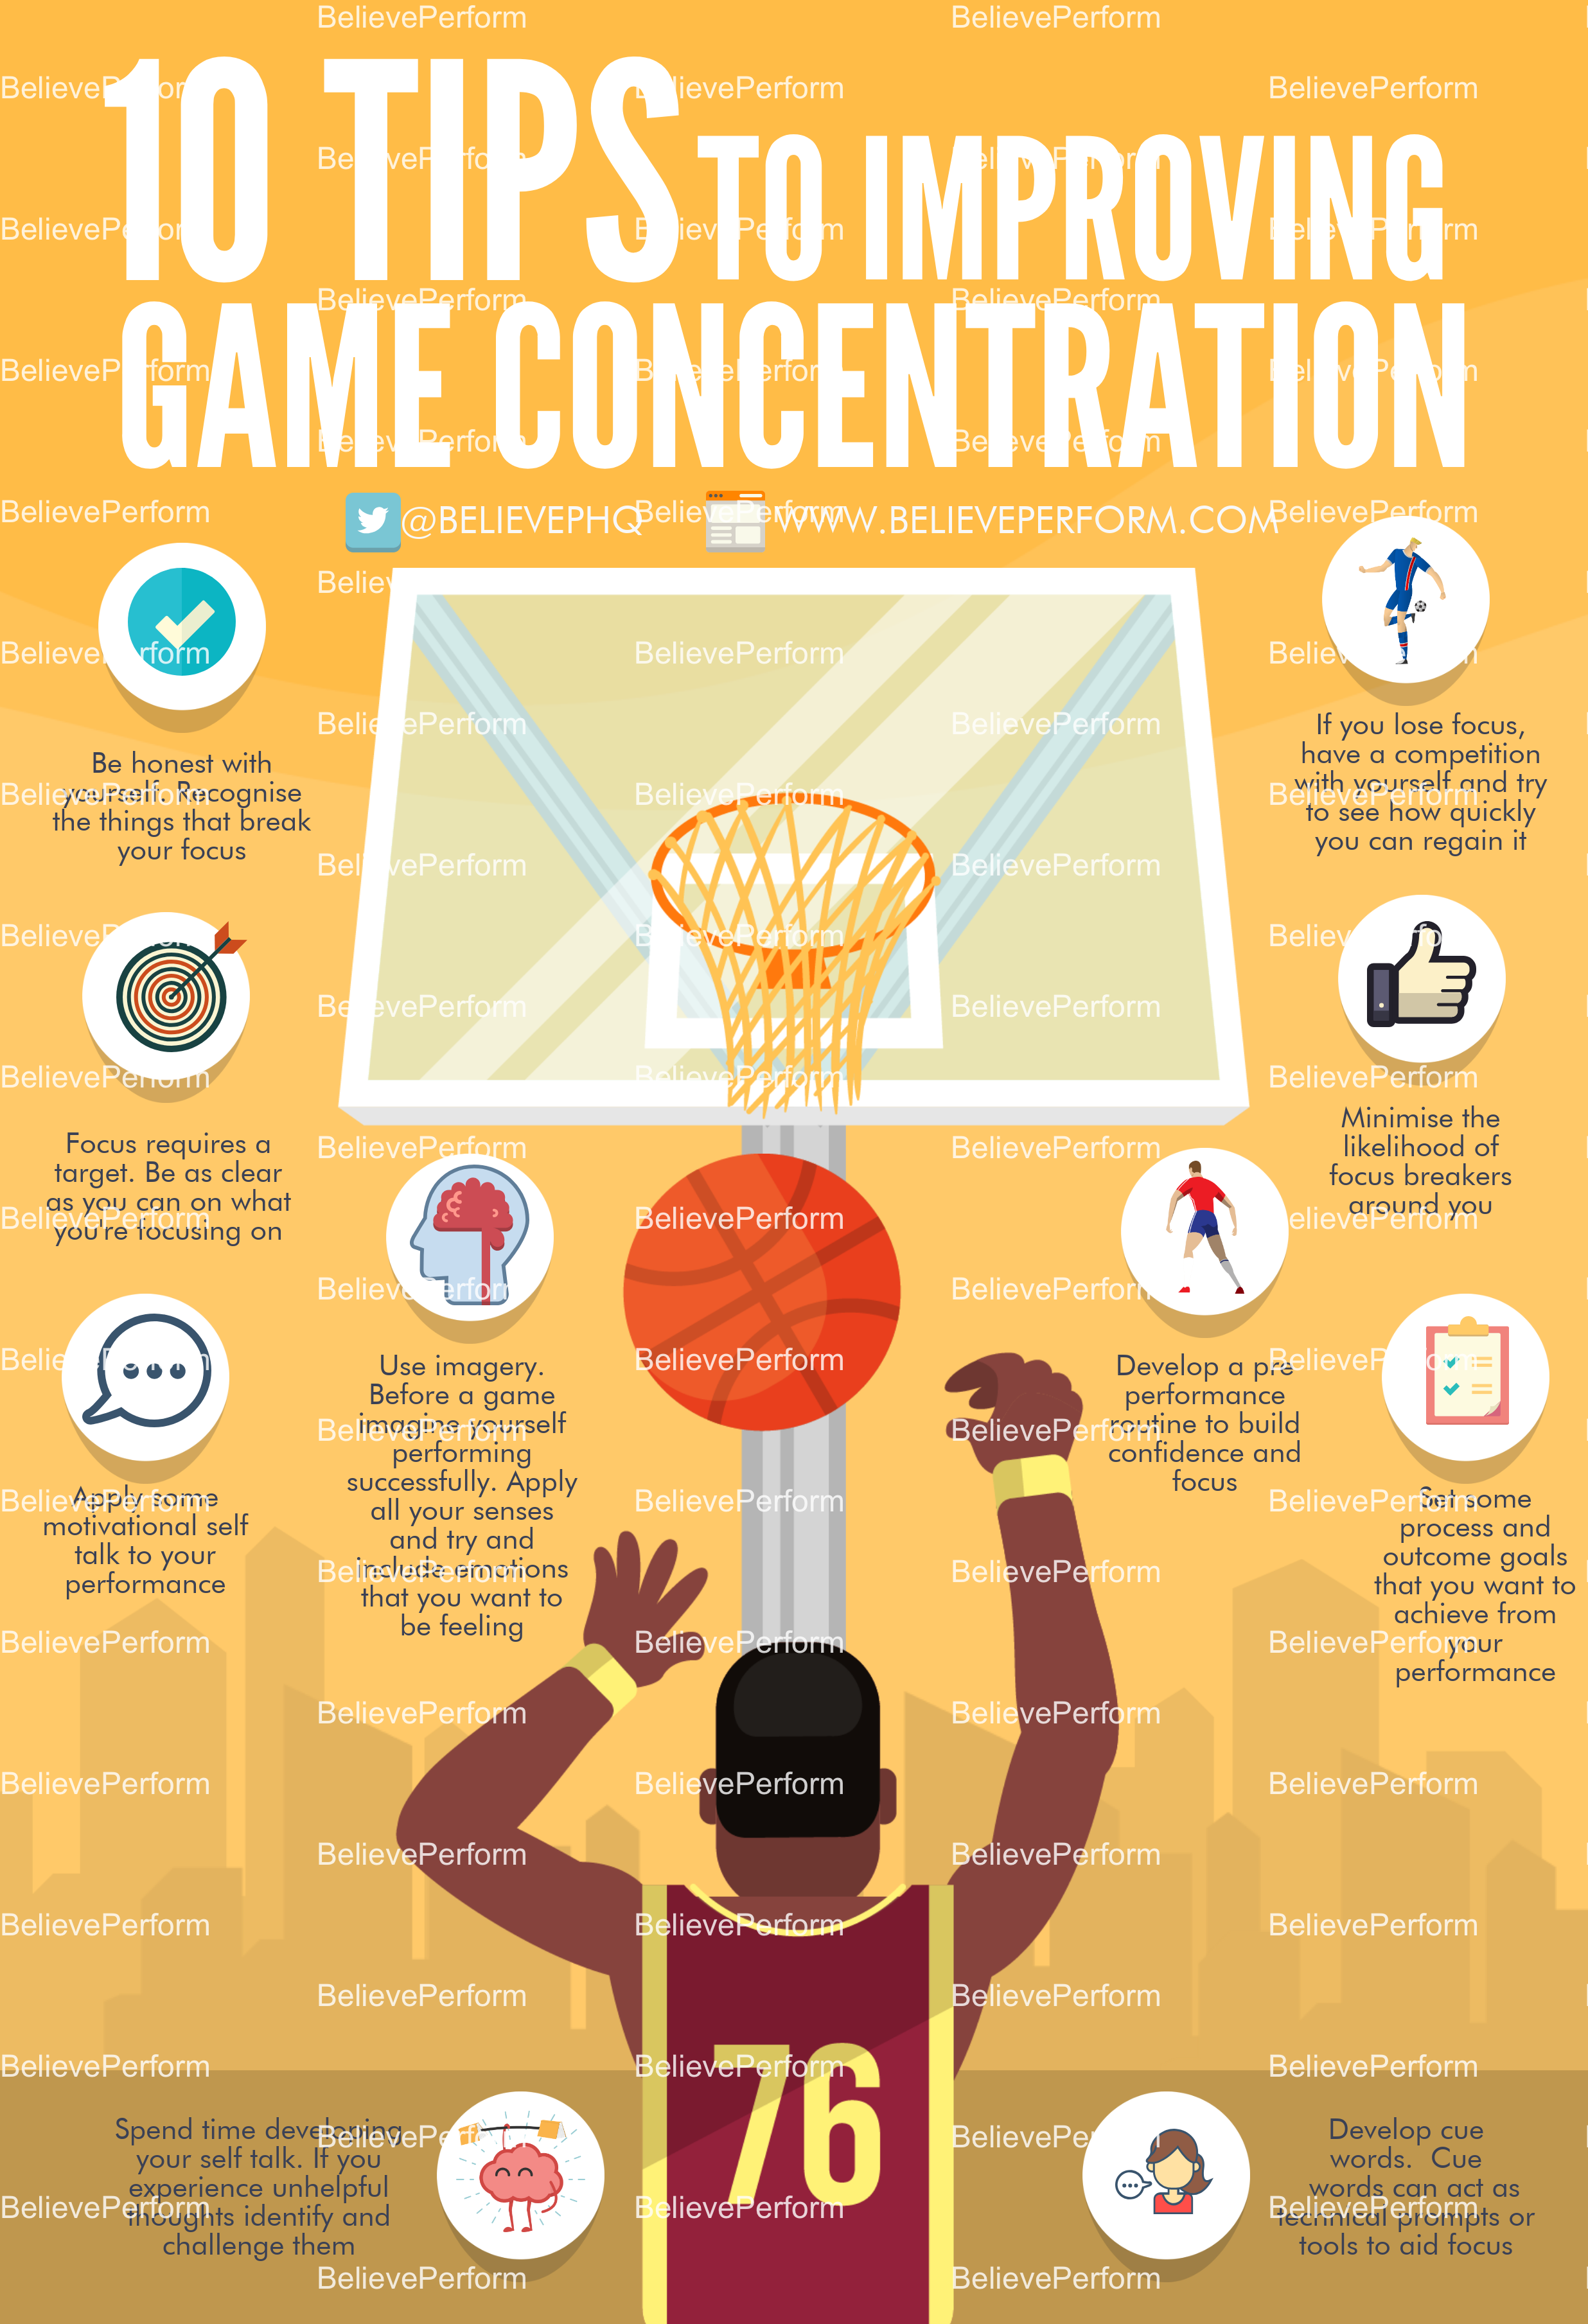 10 tips to improving game concentration